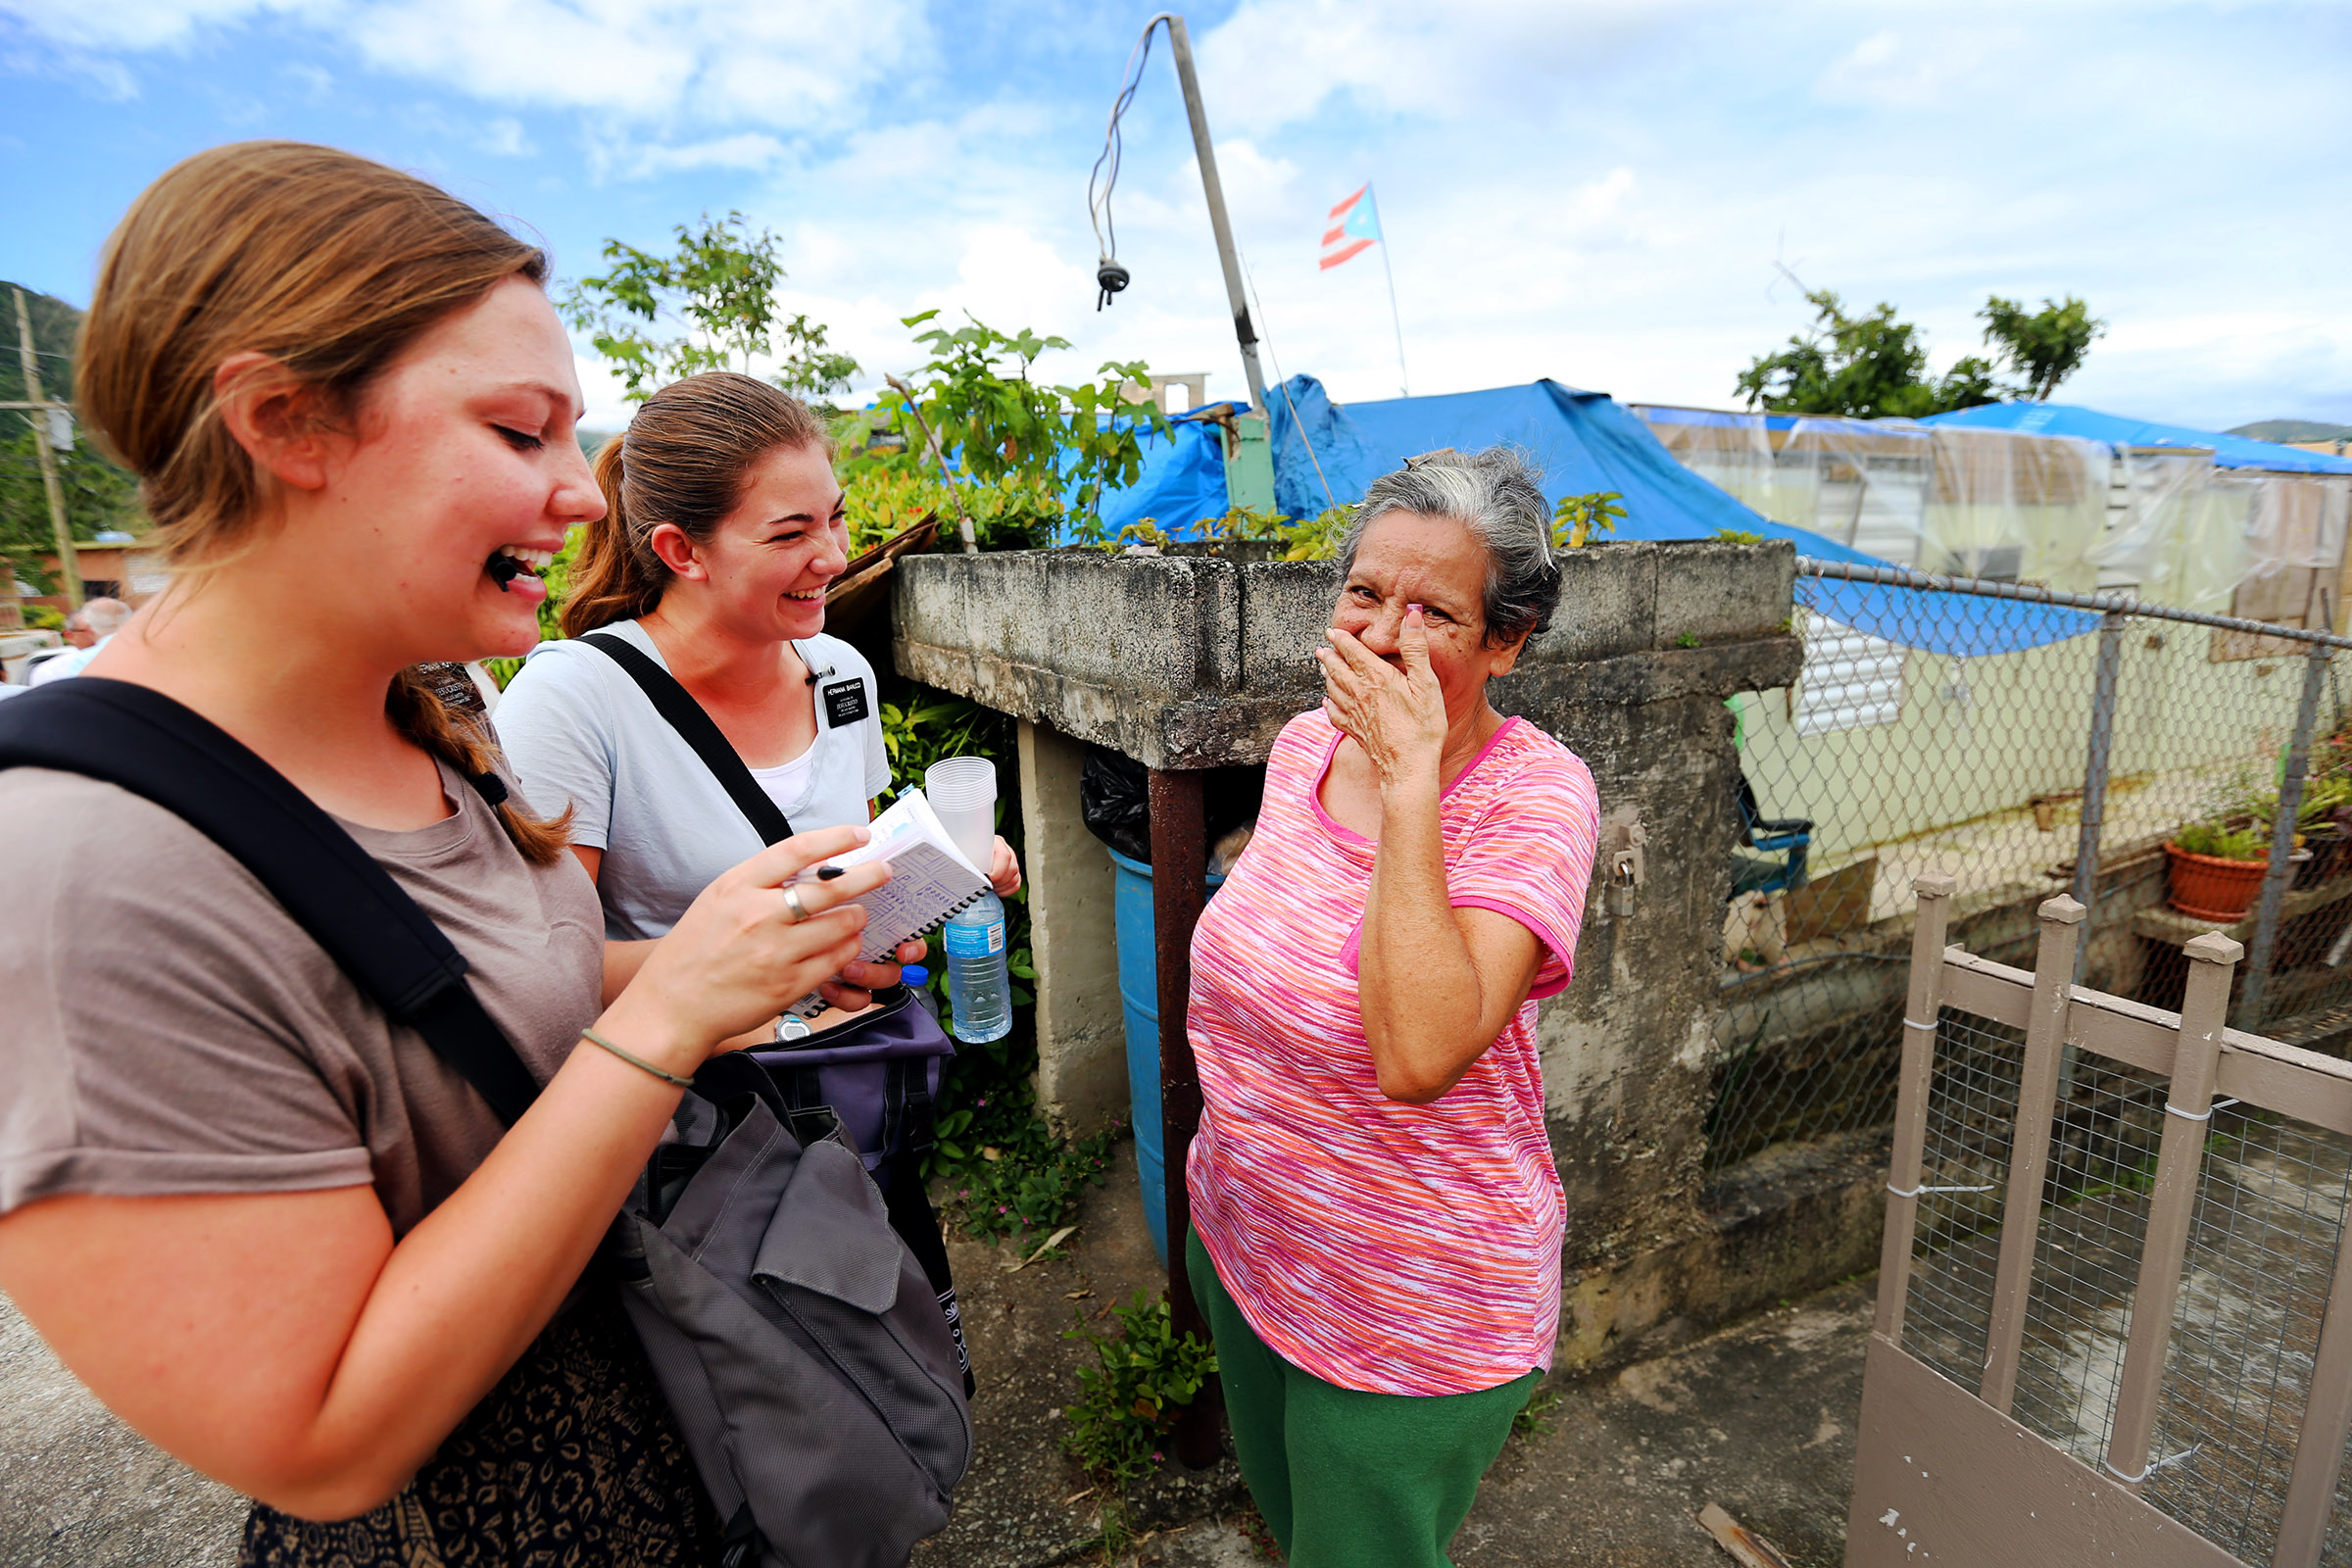 Sisters Mary Ruff from Middle, Utah, and Erin Bianucci from Layton, Utah, talk with Luci Morales in Puerto Rico on Saturday, Feb. 17, 2018.